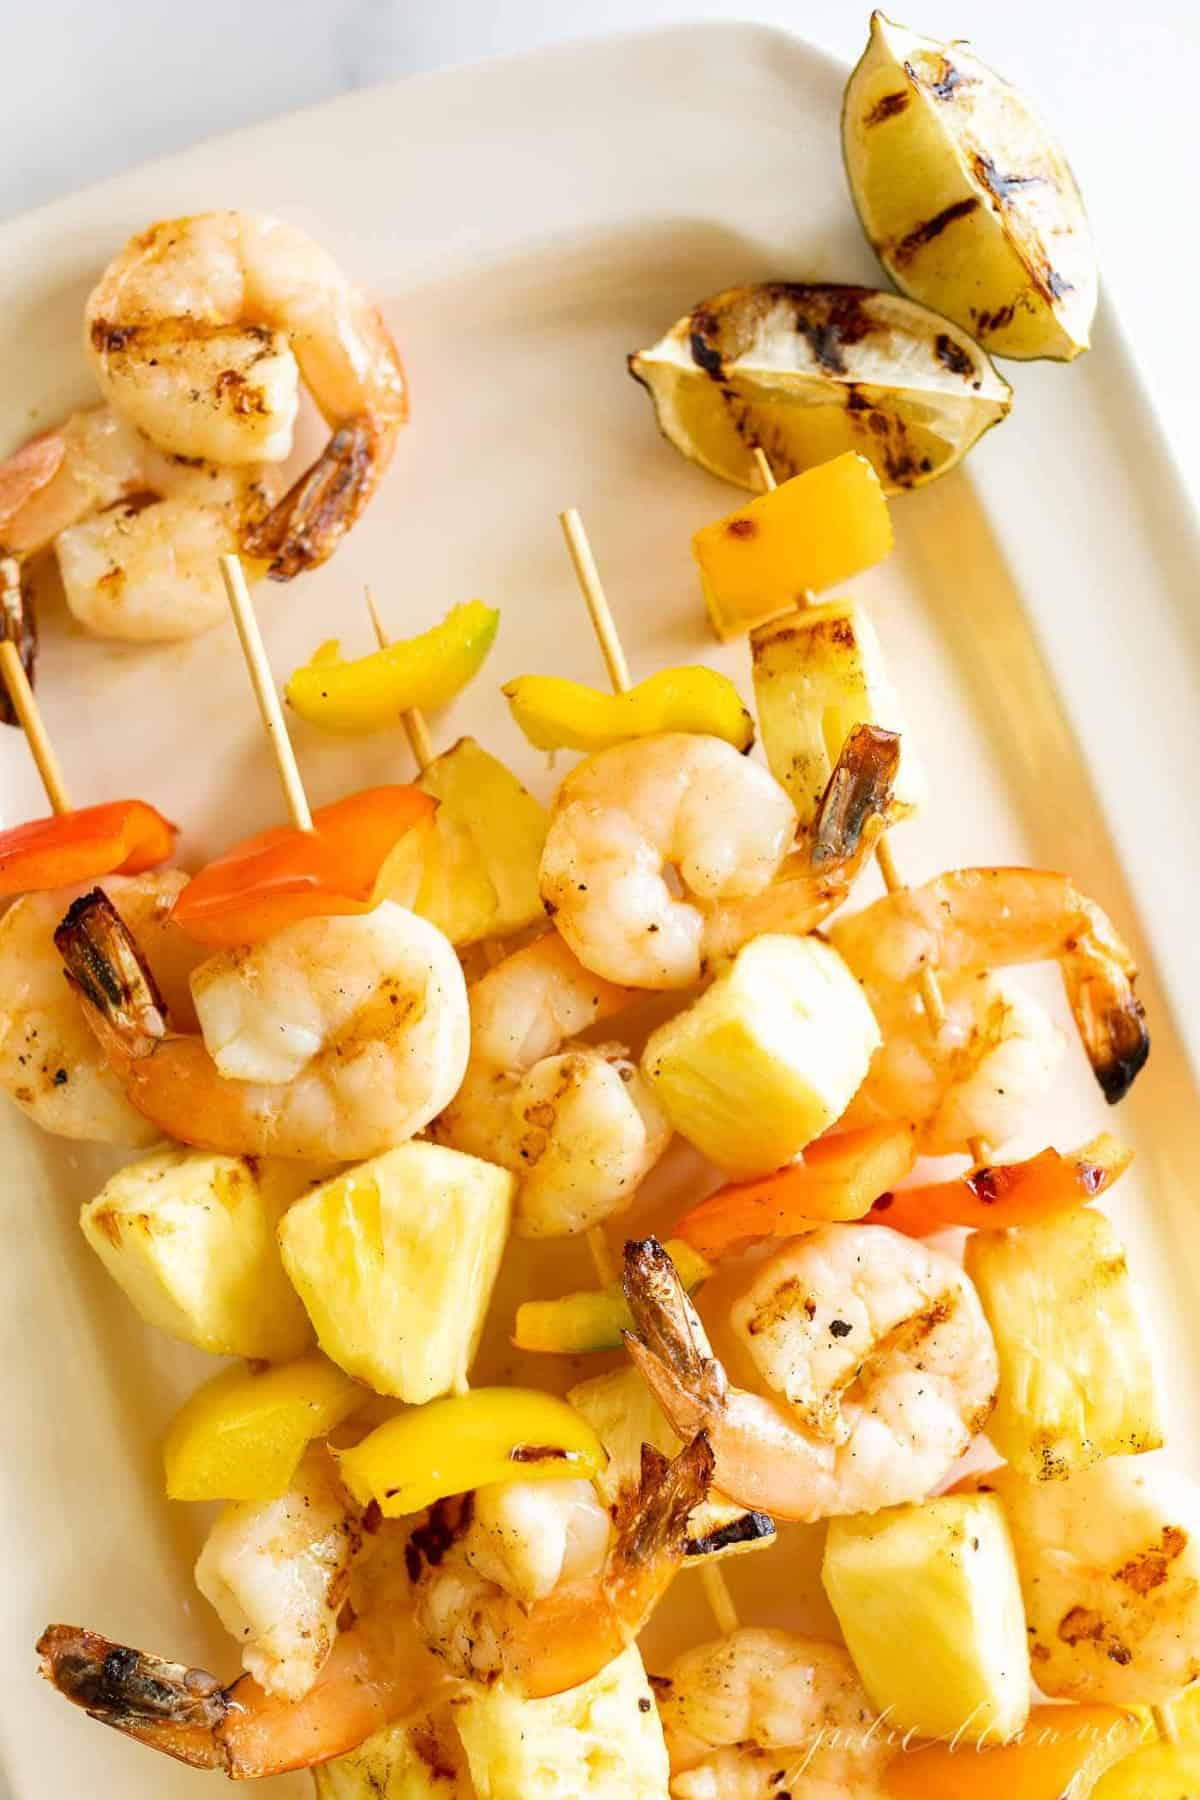 Grilled pineapple shrimp recipe on bamboo skewers.